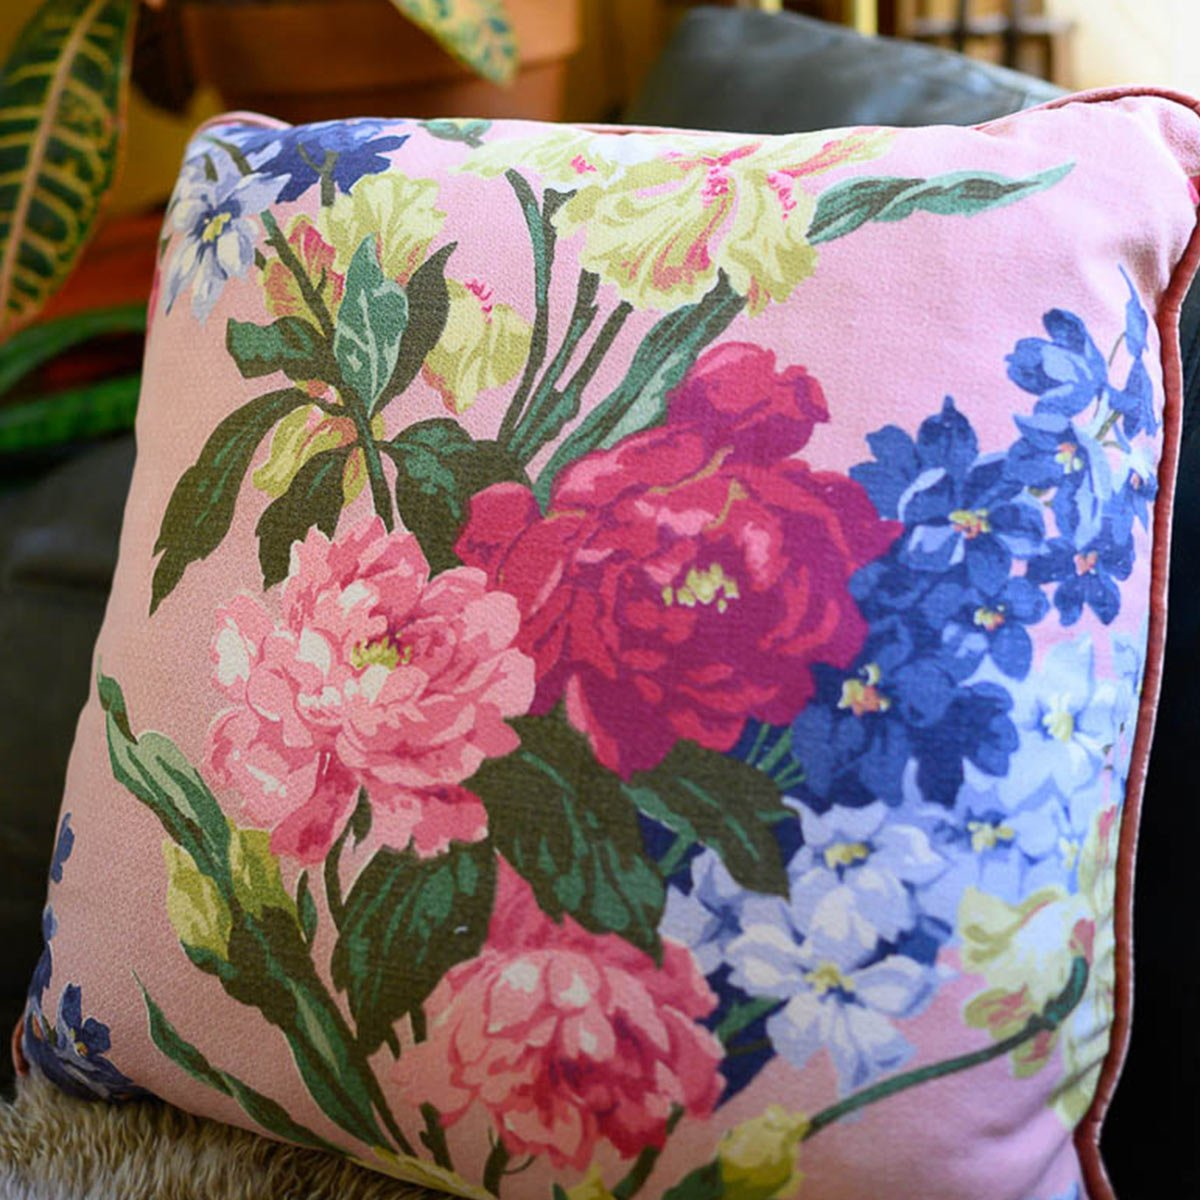 pair_of_pillows_21_square_floral_motif_on_black-MLP_6279